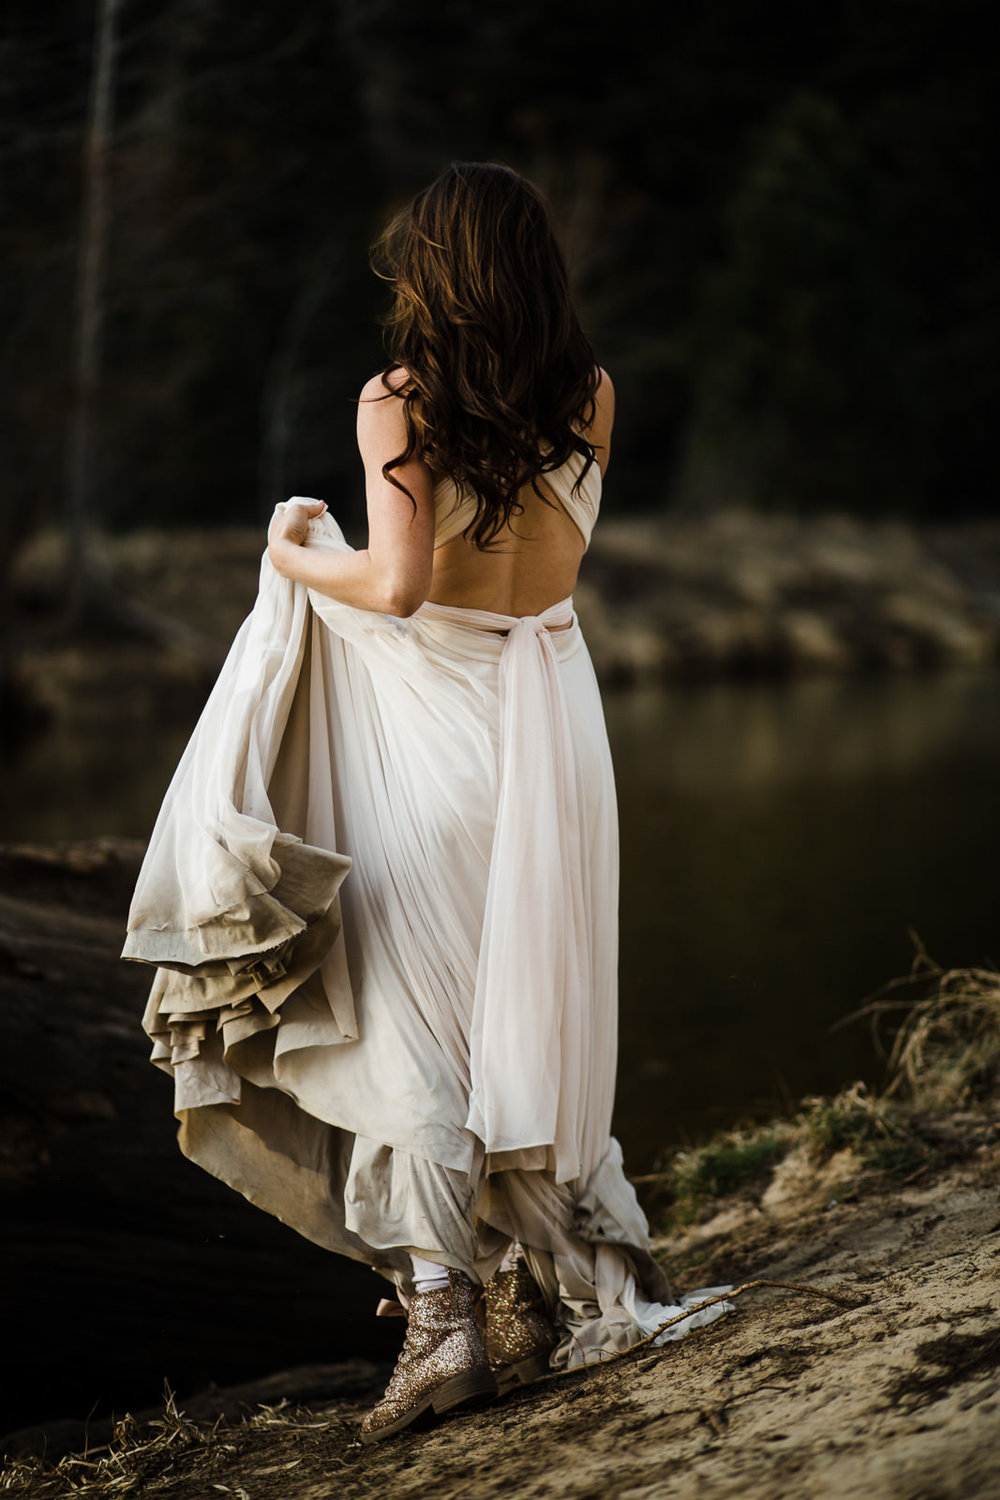 winter-elopement-california-intimate-adventure-photographer-yosemite-national-park-daniela-vallant-wedding-elopement-photographer-intimate-wedding-photographer-tulle-wedding-dress